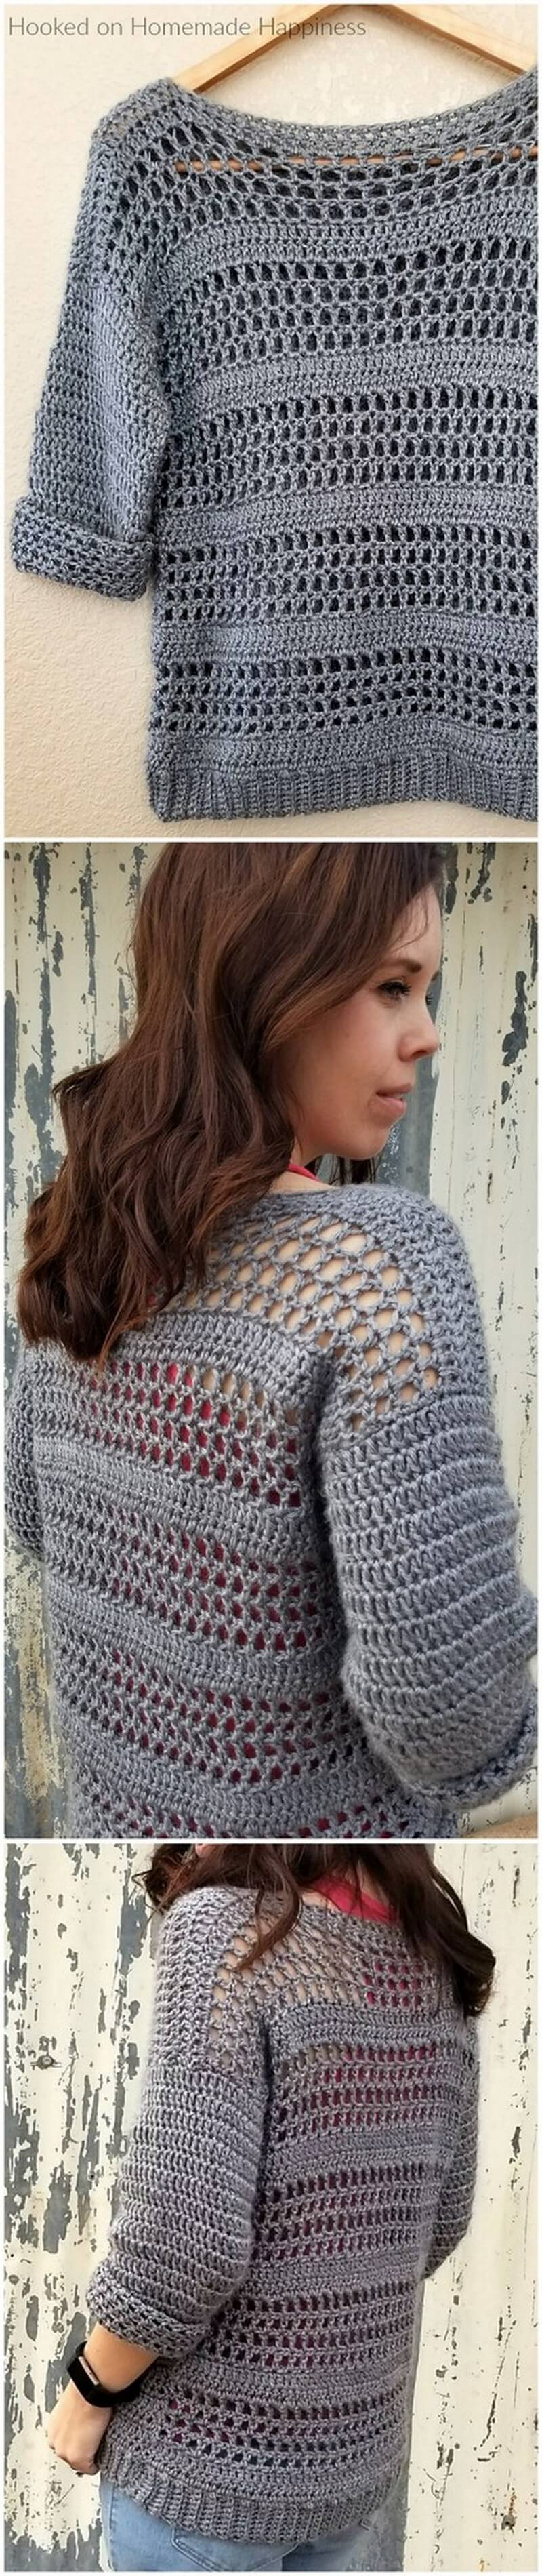 Crochet Sweater Pattern (3)